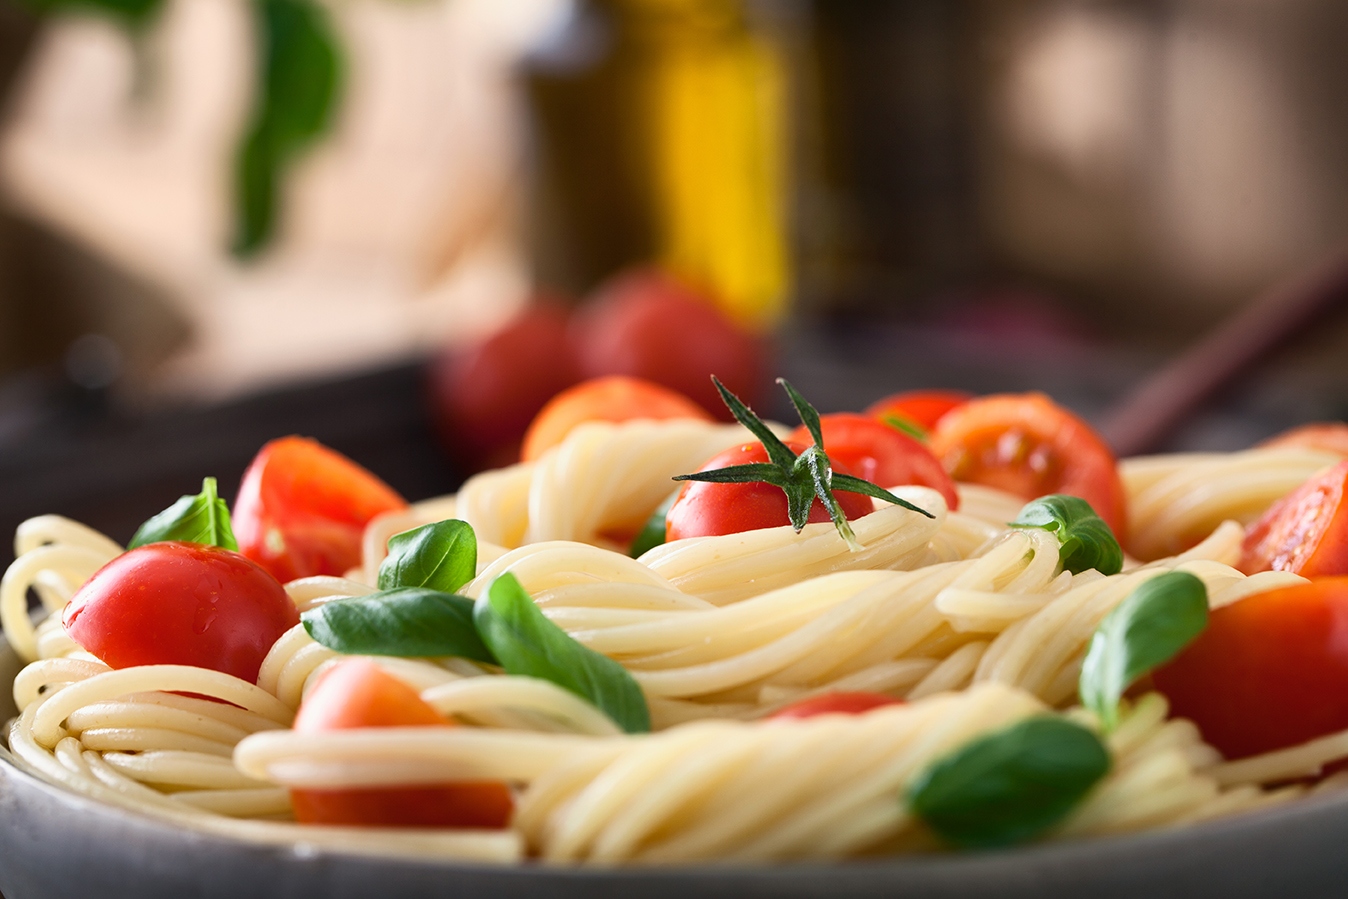 web-bigstock-Pasta-With-Olive-Oil-93920489